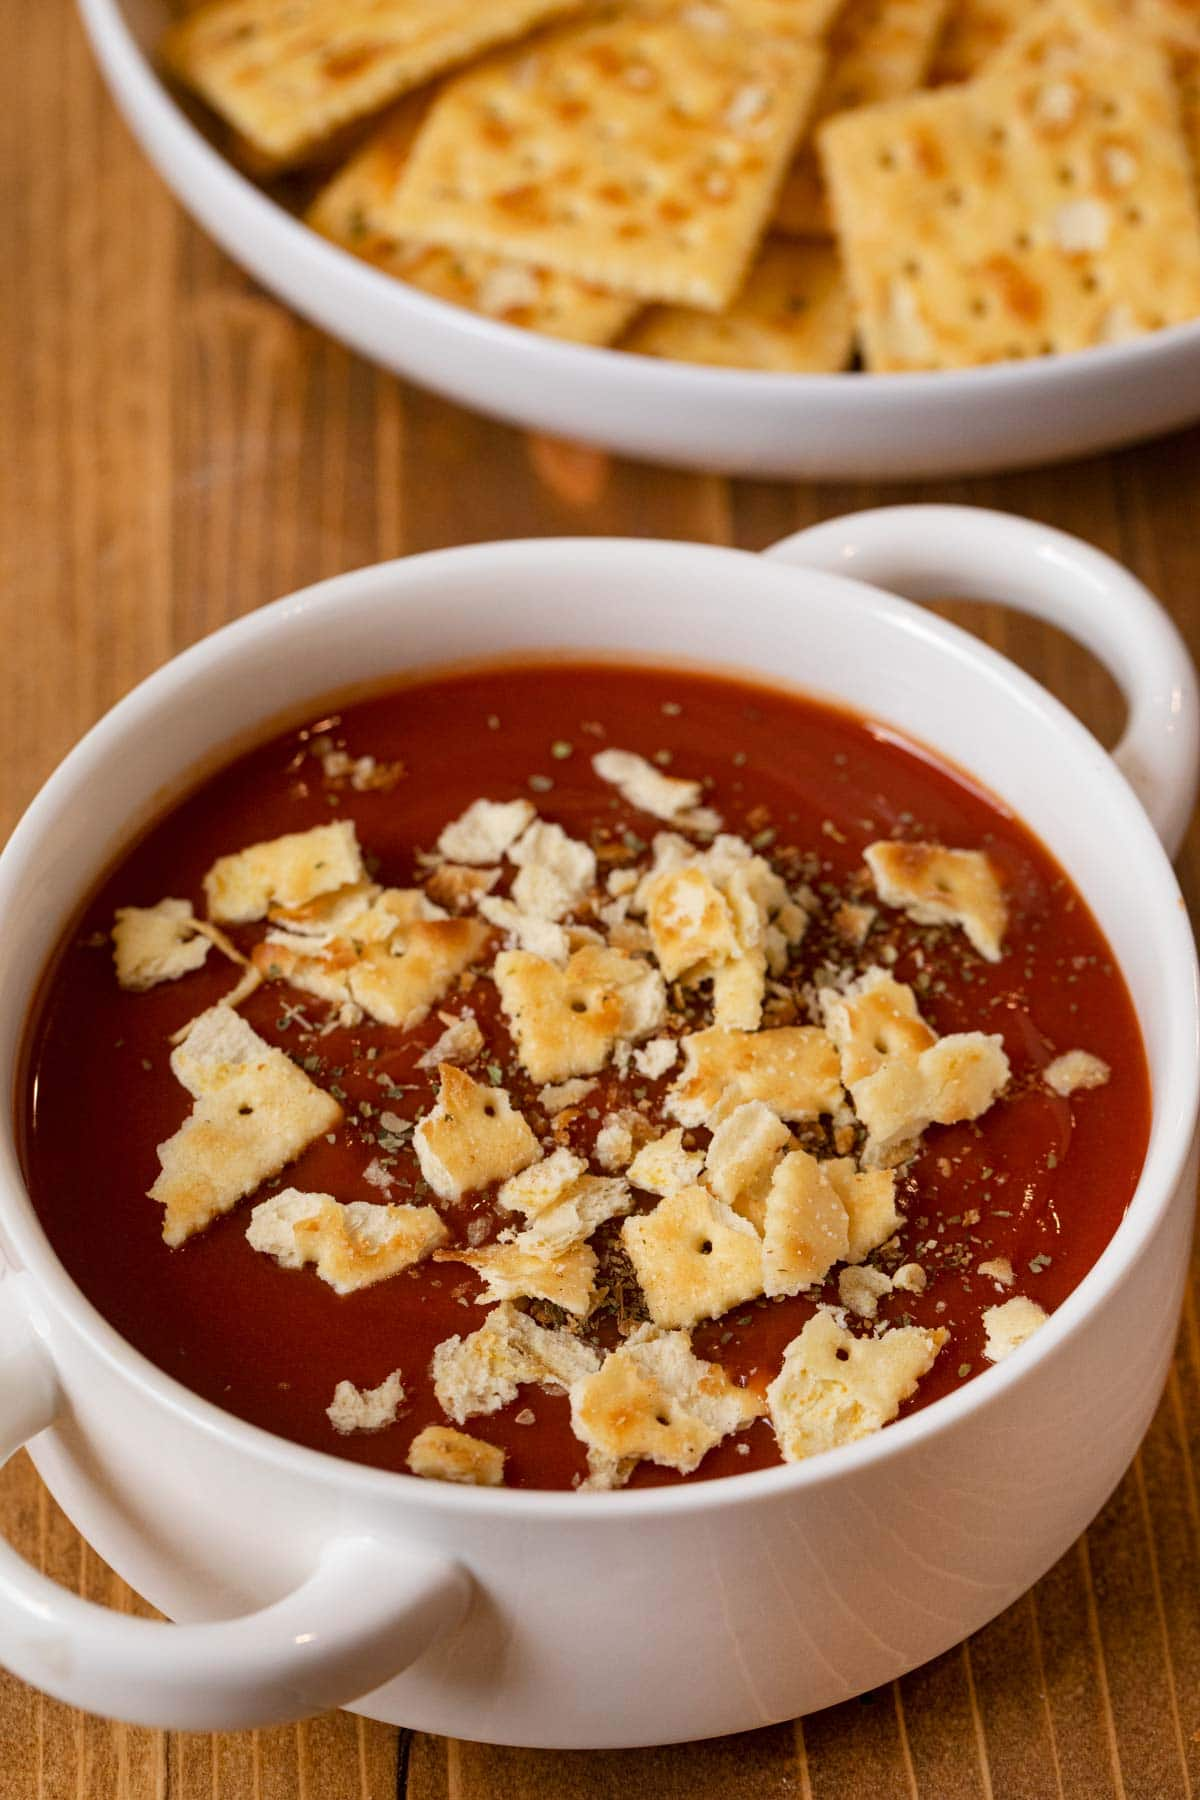 Ranch Mix Saltines crumbled up into bowl of tomato soup